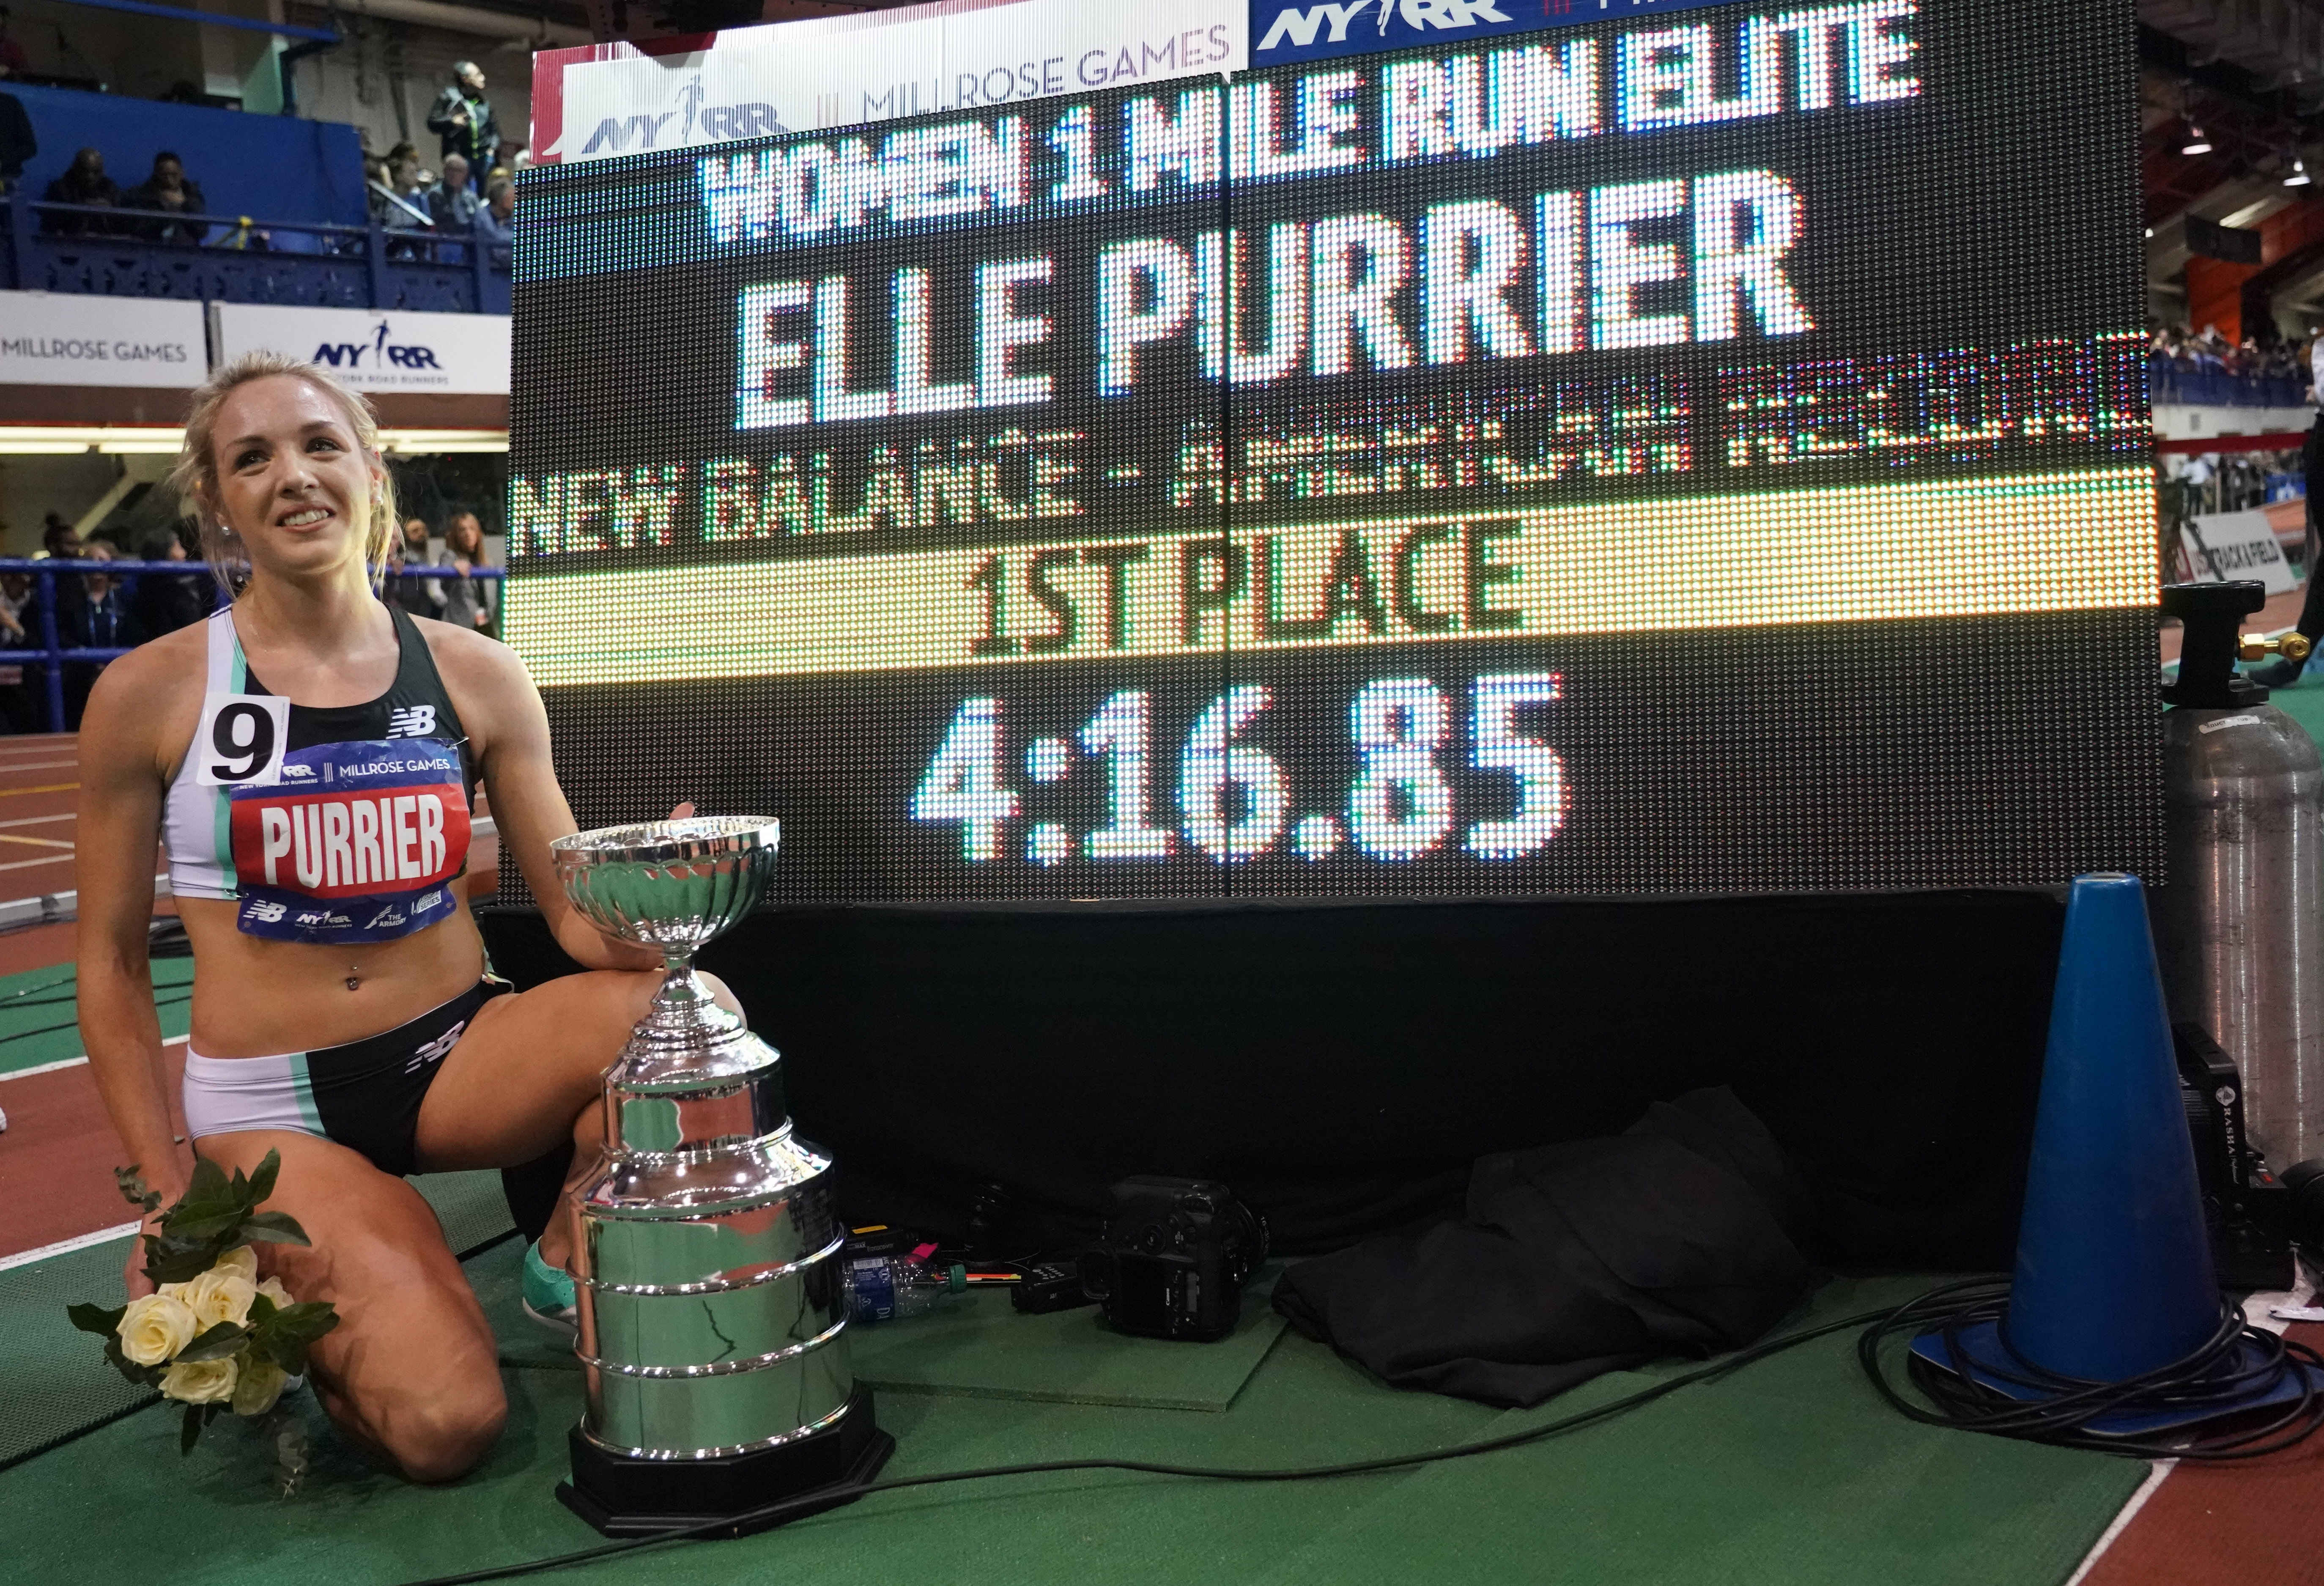 Elle Purrier (USA) poses with the scoreboard after winning the women's Wanamaker mile in an American record 4:16.85 during the 113th Millrose Games at The Armory.